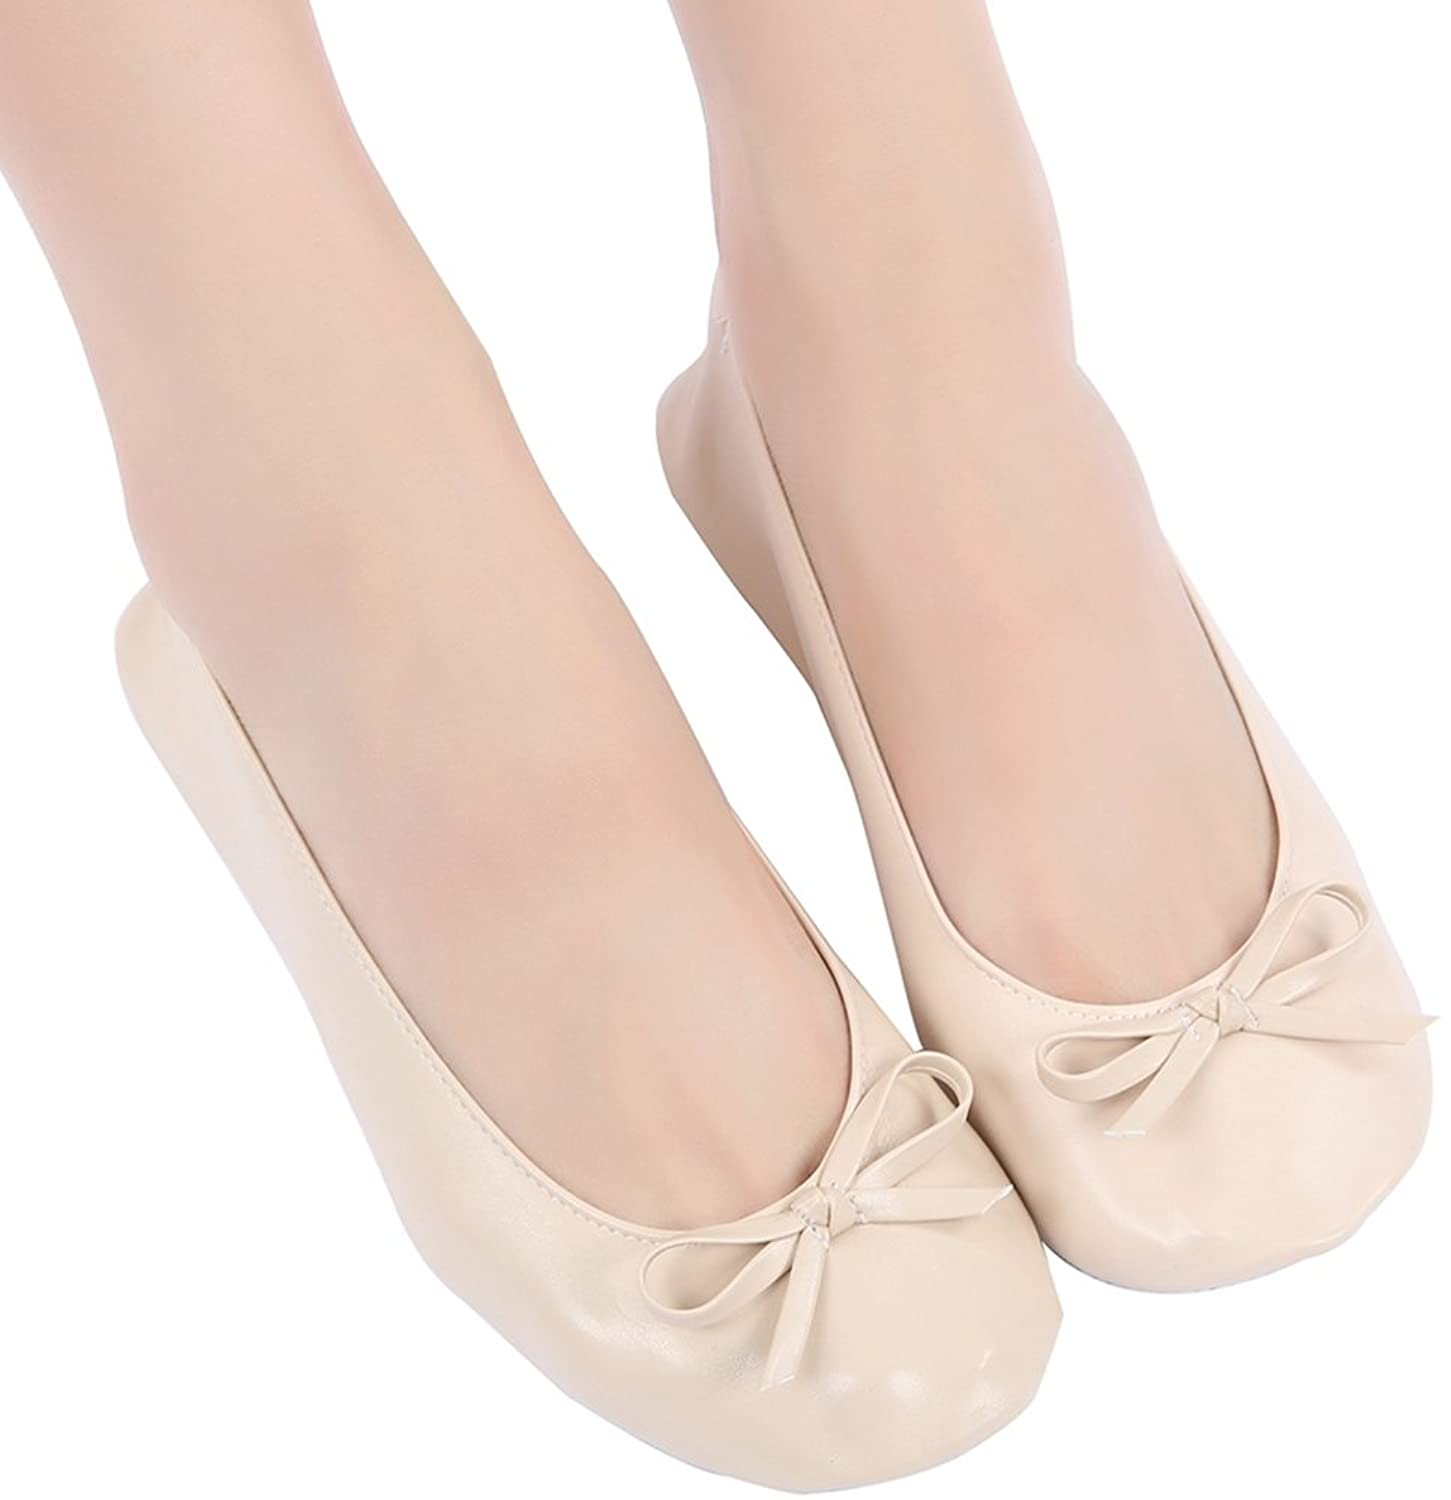 Aohaolee Beige Women Portable Roll Up Ballerinas Foldable Ballet Flat Shoes  With Carrier Pouch Bag: Amazon.co.uk: Shoes & Bags